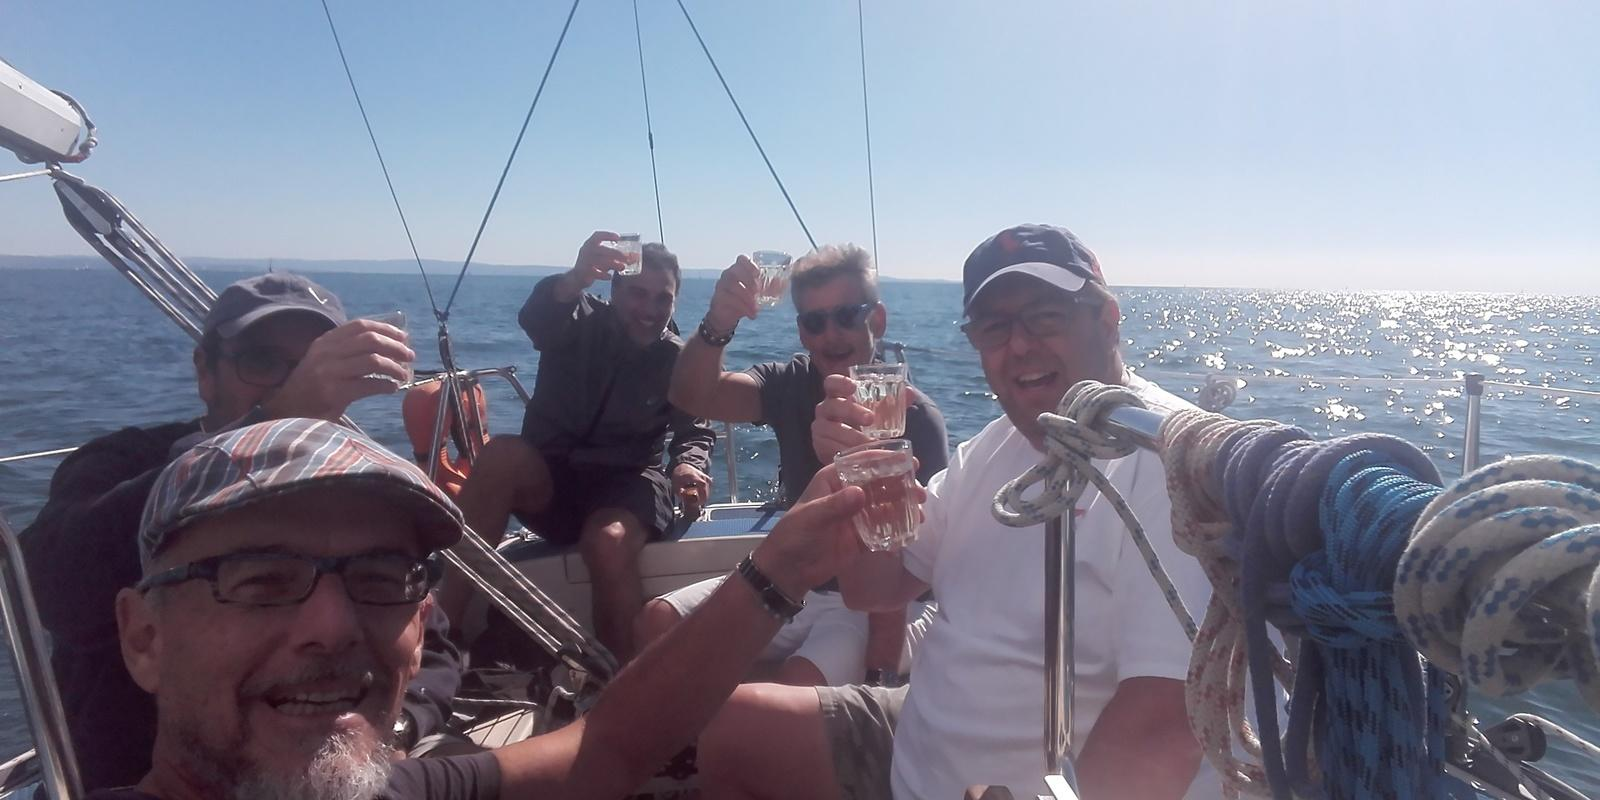 Sailing in taste: 1st quality sailing and fish!